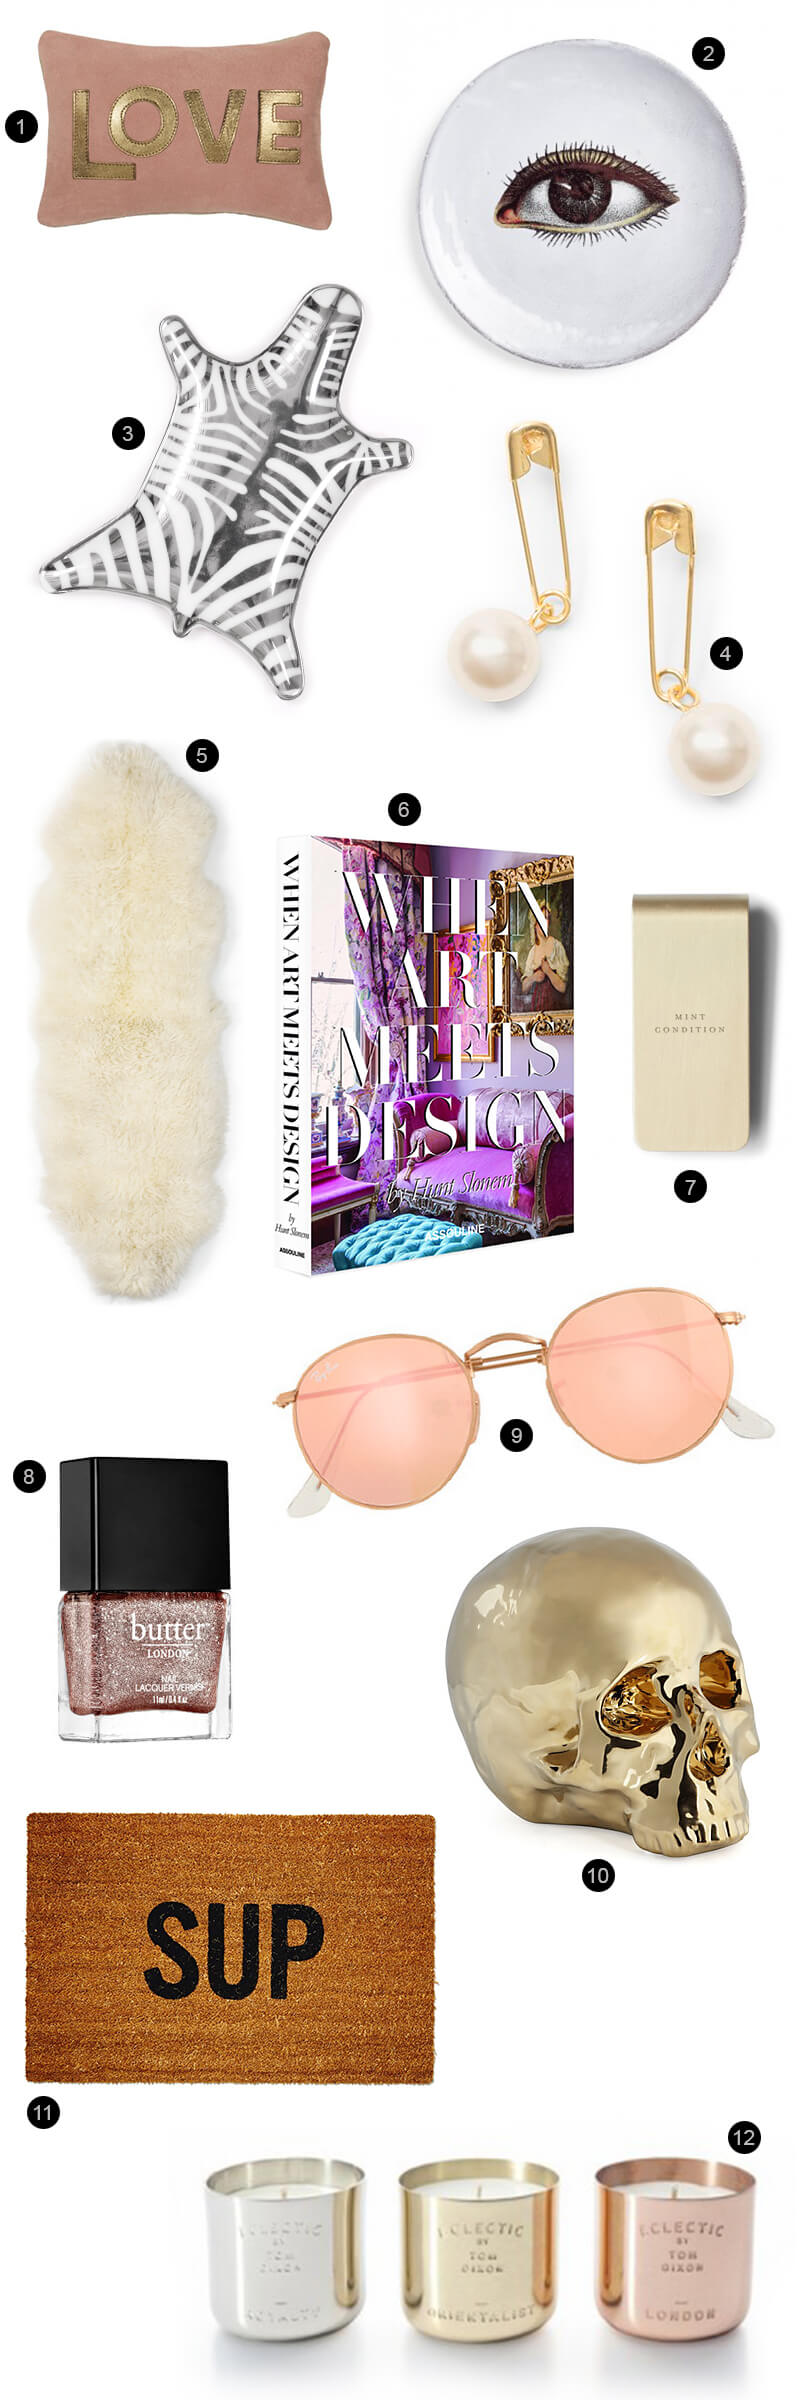 Gift Guide: Last Minute Holiday Gifts